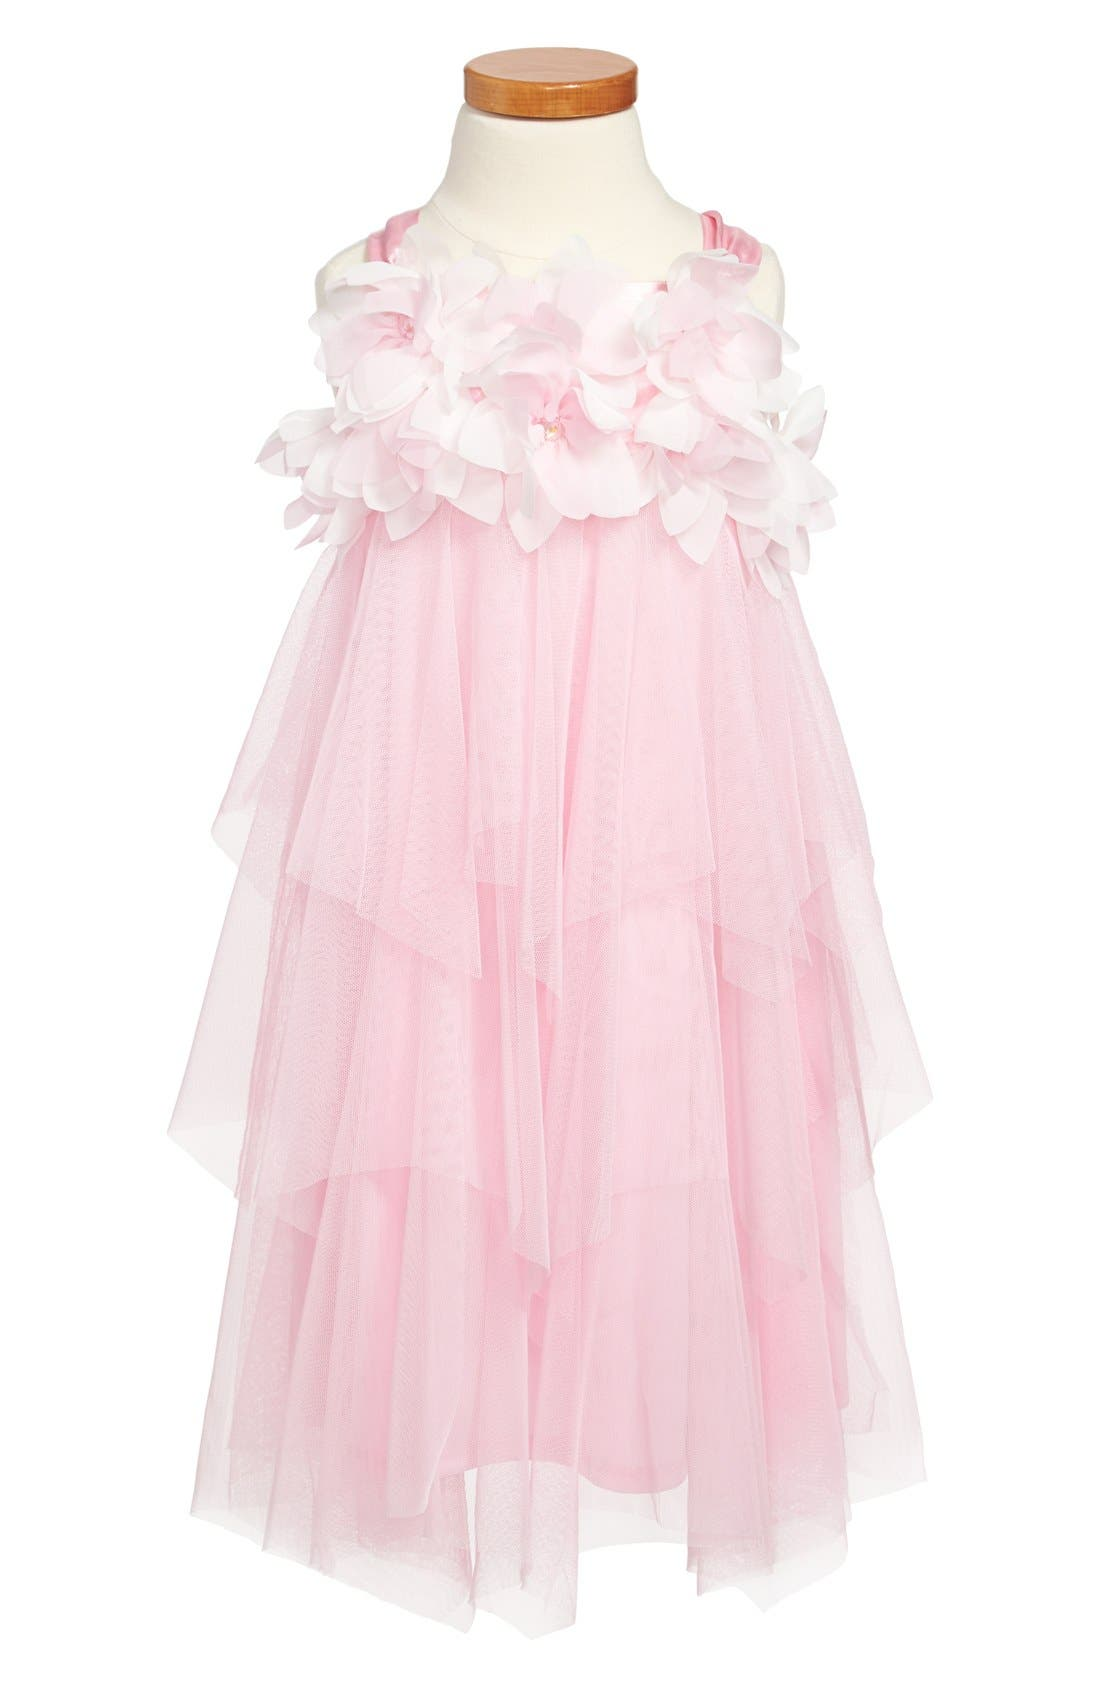 Alternate Image 1 Selected - Biscotti Floral Tiered Dress (Little Girls & Big Girls)